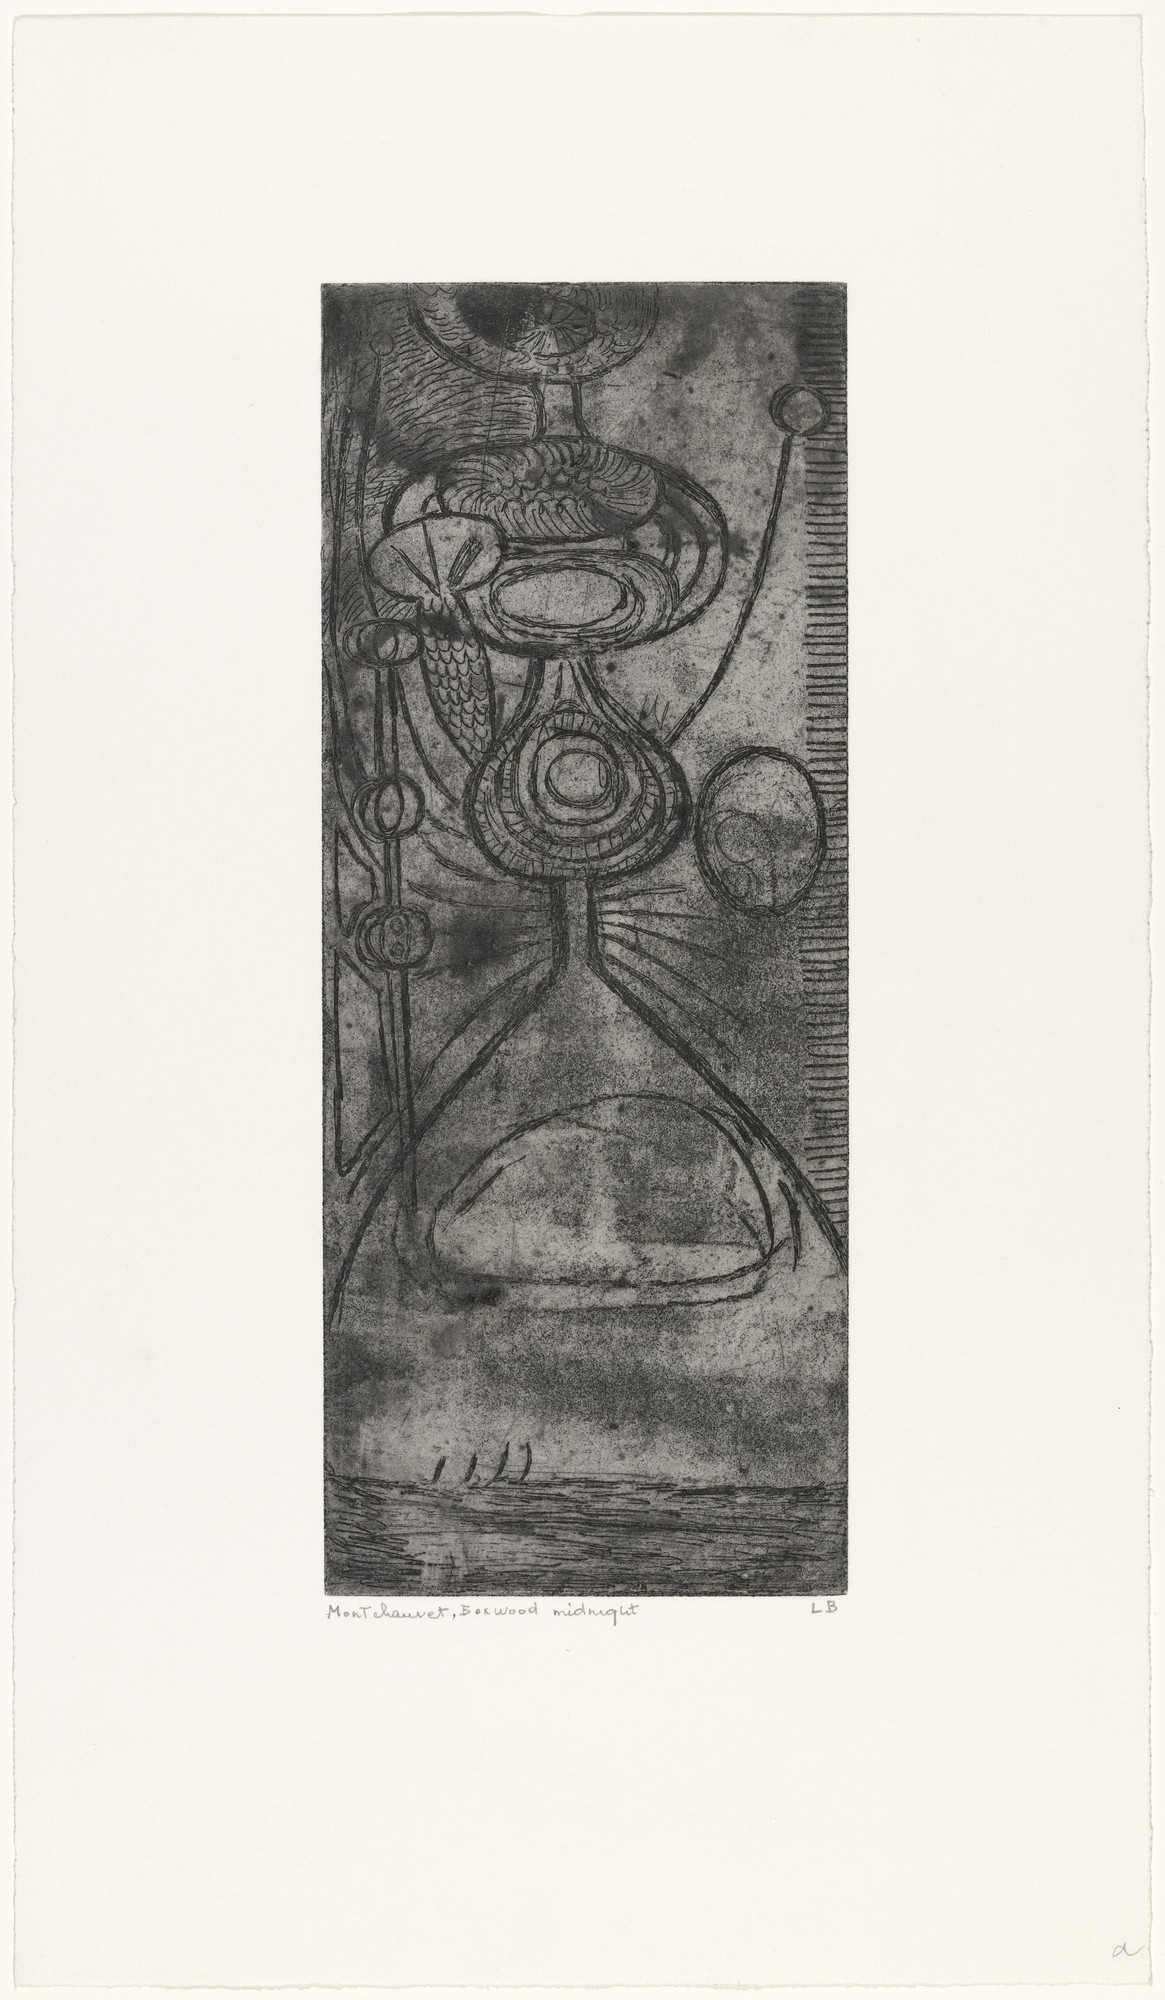 Louise Bourgeois. Boxwood Midnight. c. 1945, reprinted 1990